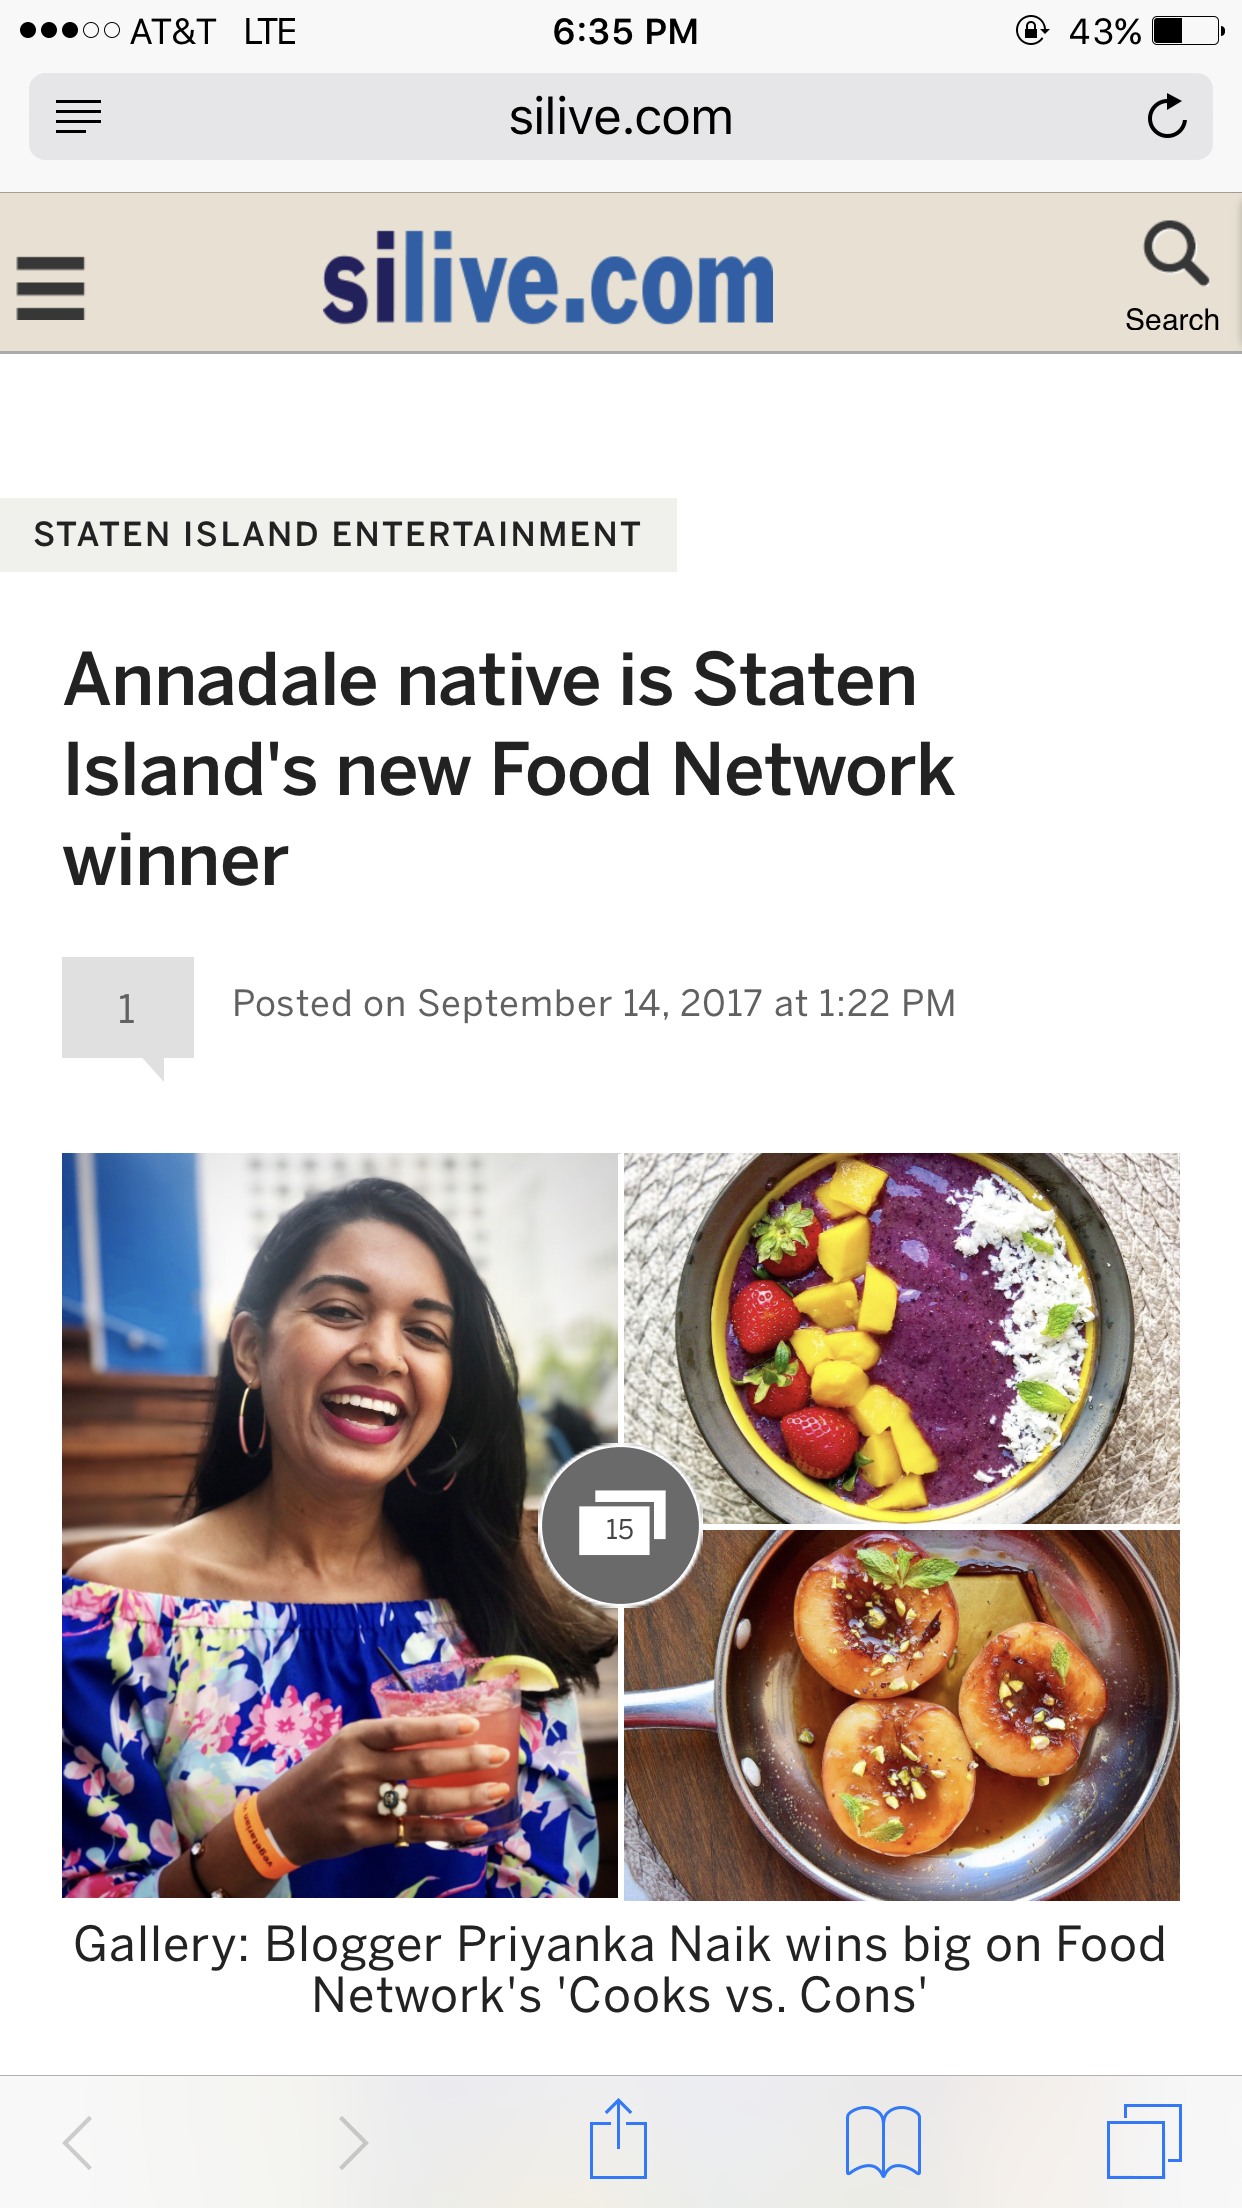 Food networks cooks vs cons winner chefpriyanka to hear from here i have only received love support from the community and was even featured on the staten island advance homepage with a lovely forumfinder Gallery